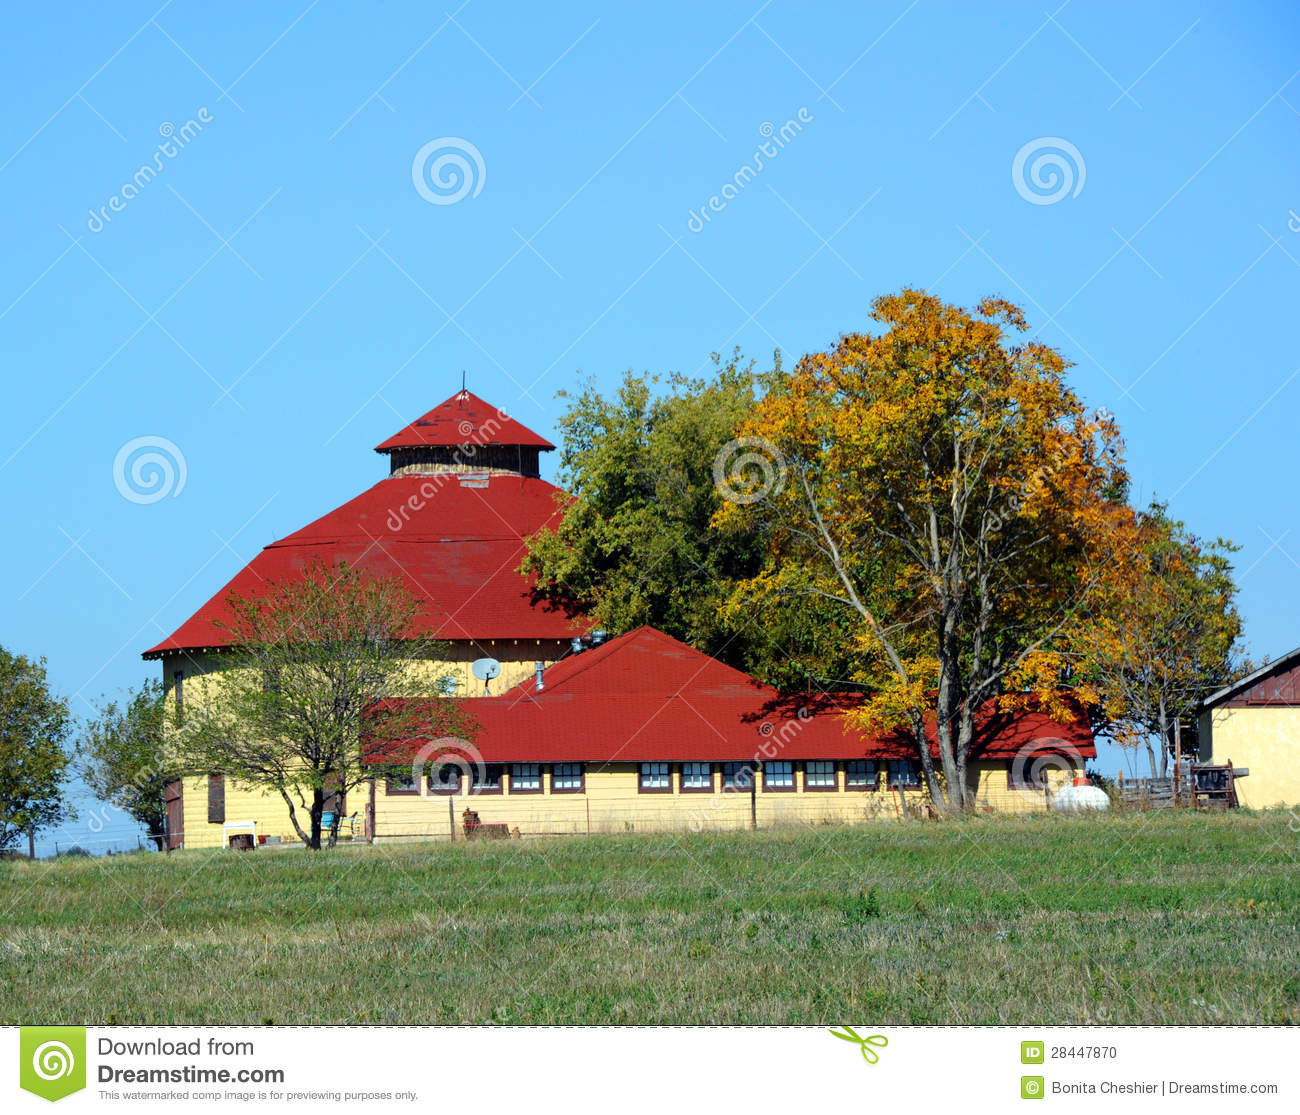 Round Barn with Shingle Roof